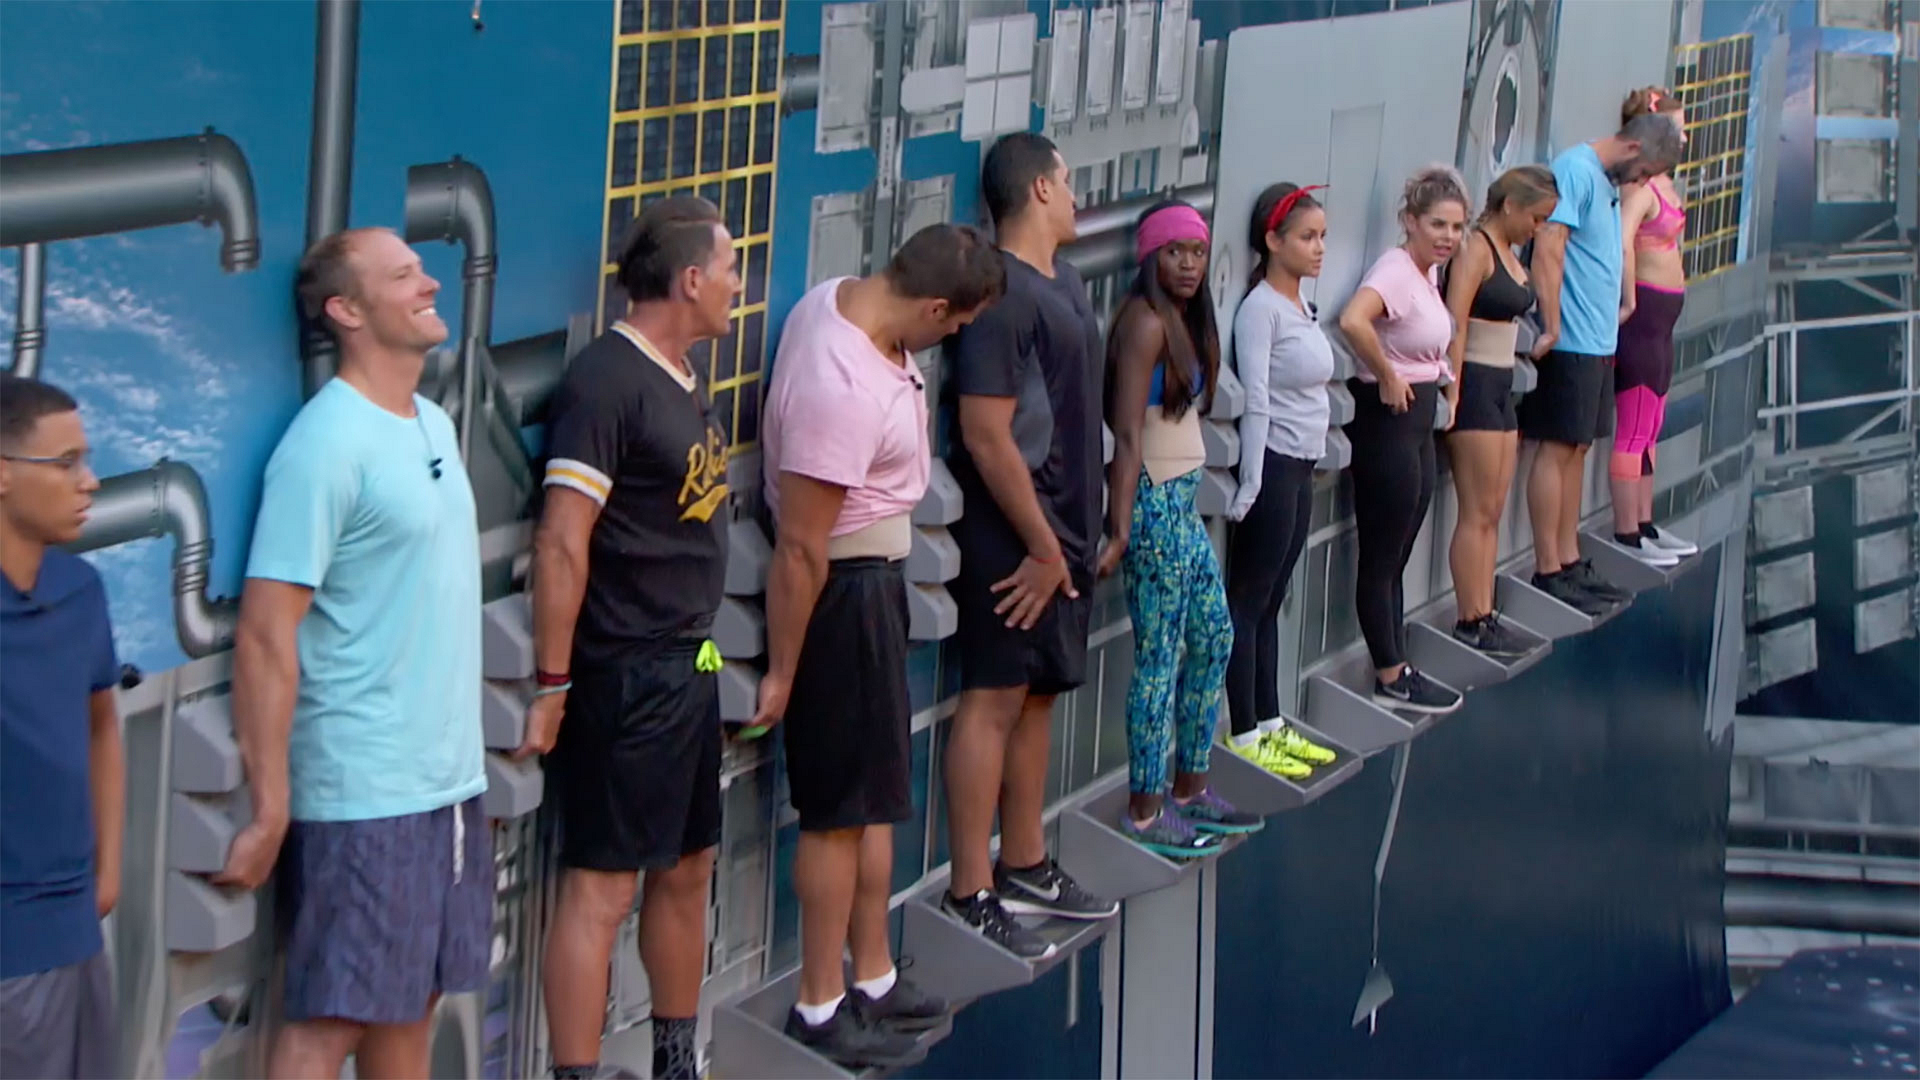 Big Brother's endurance competitions are no laughing matter